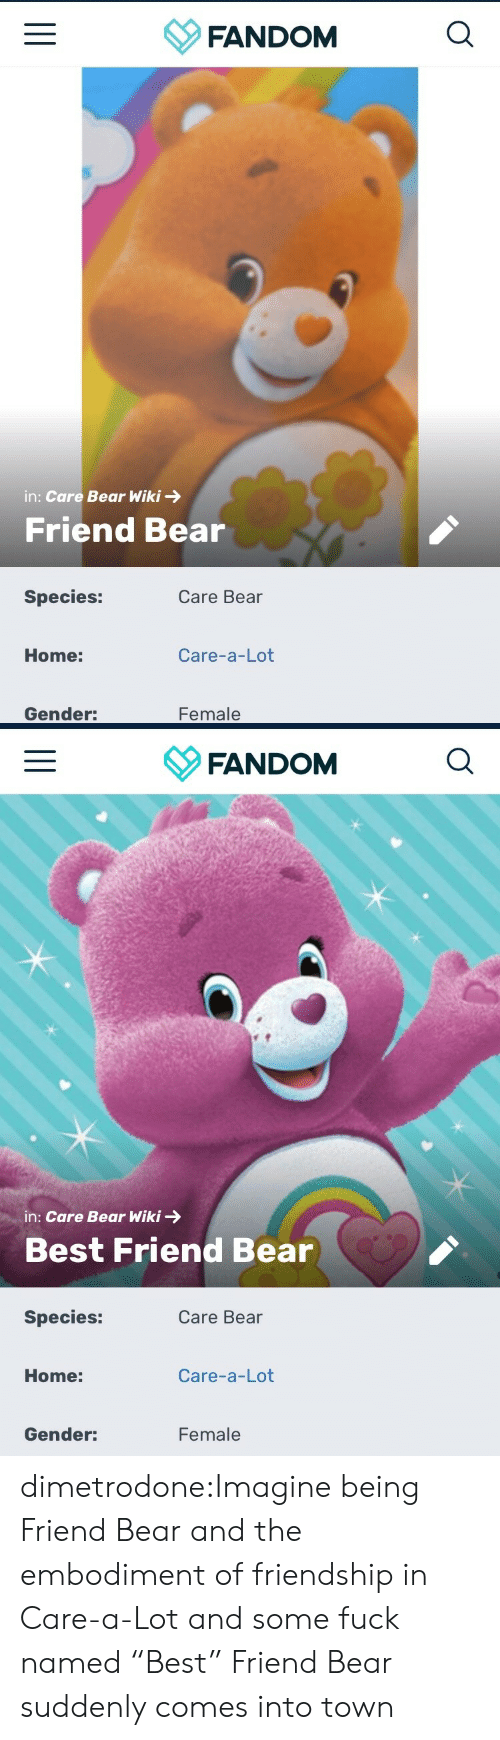 "Best Friend, Tumblr, and Bear: FANDOM  in: Care Bear Wiki  Friend Bear  Species:  Care Bear  Care-a-Lot  Home:  Female  Gender:   FANDOM  in: Care Bear Wiki  Best Friend Bear  Species:  Care Bear  Care-a-Lot  Home:  Female  Gender: dimetrodone:Imagine being Friend Bear and the embodiment of friendship in Care-a-Lot and some fuck named ""Best"" Friend Bear suddenly comes into town"